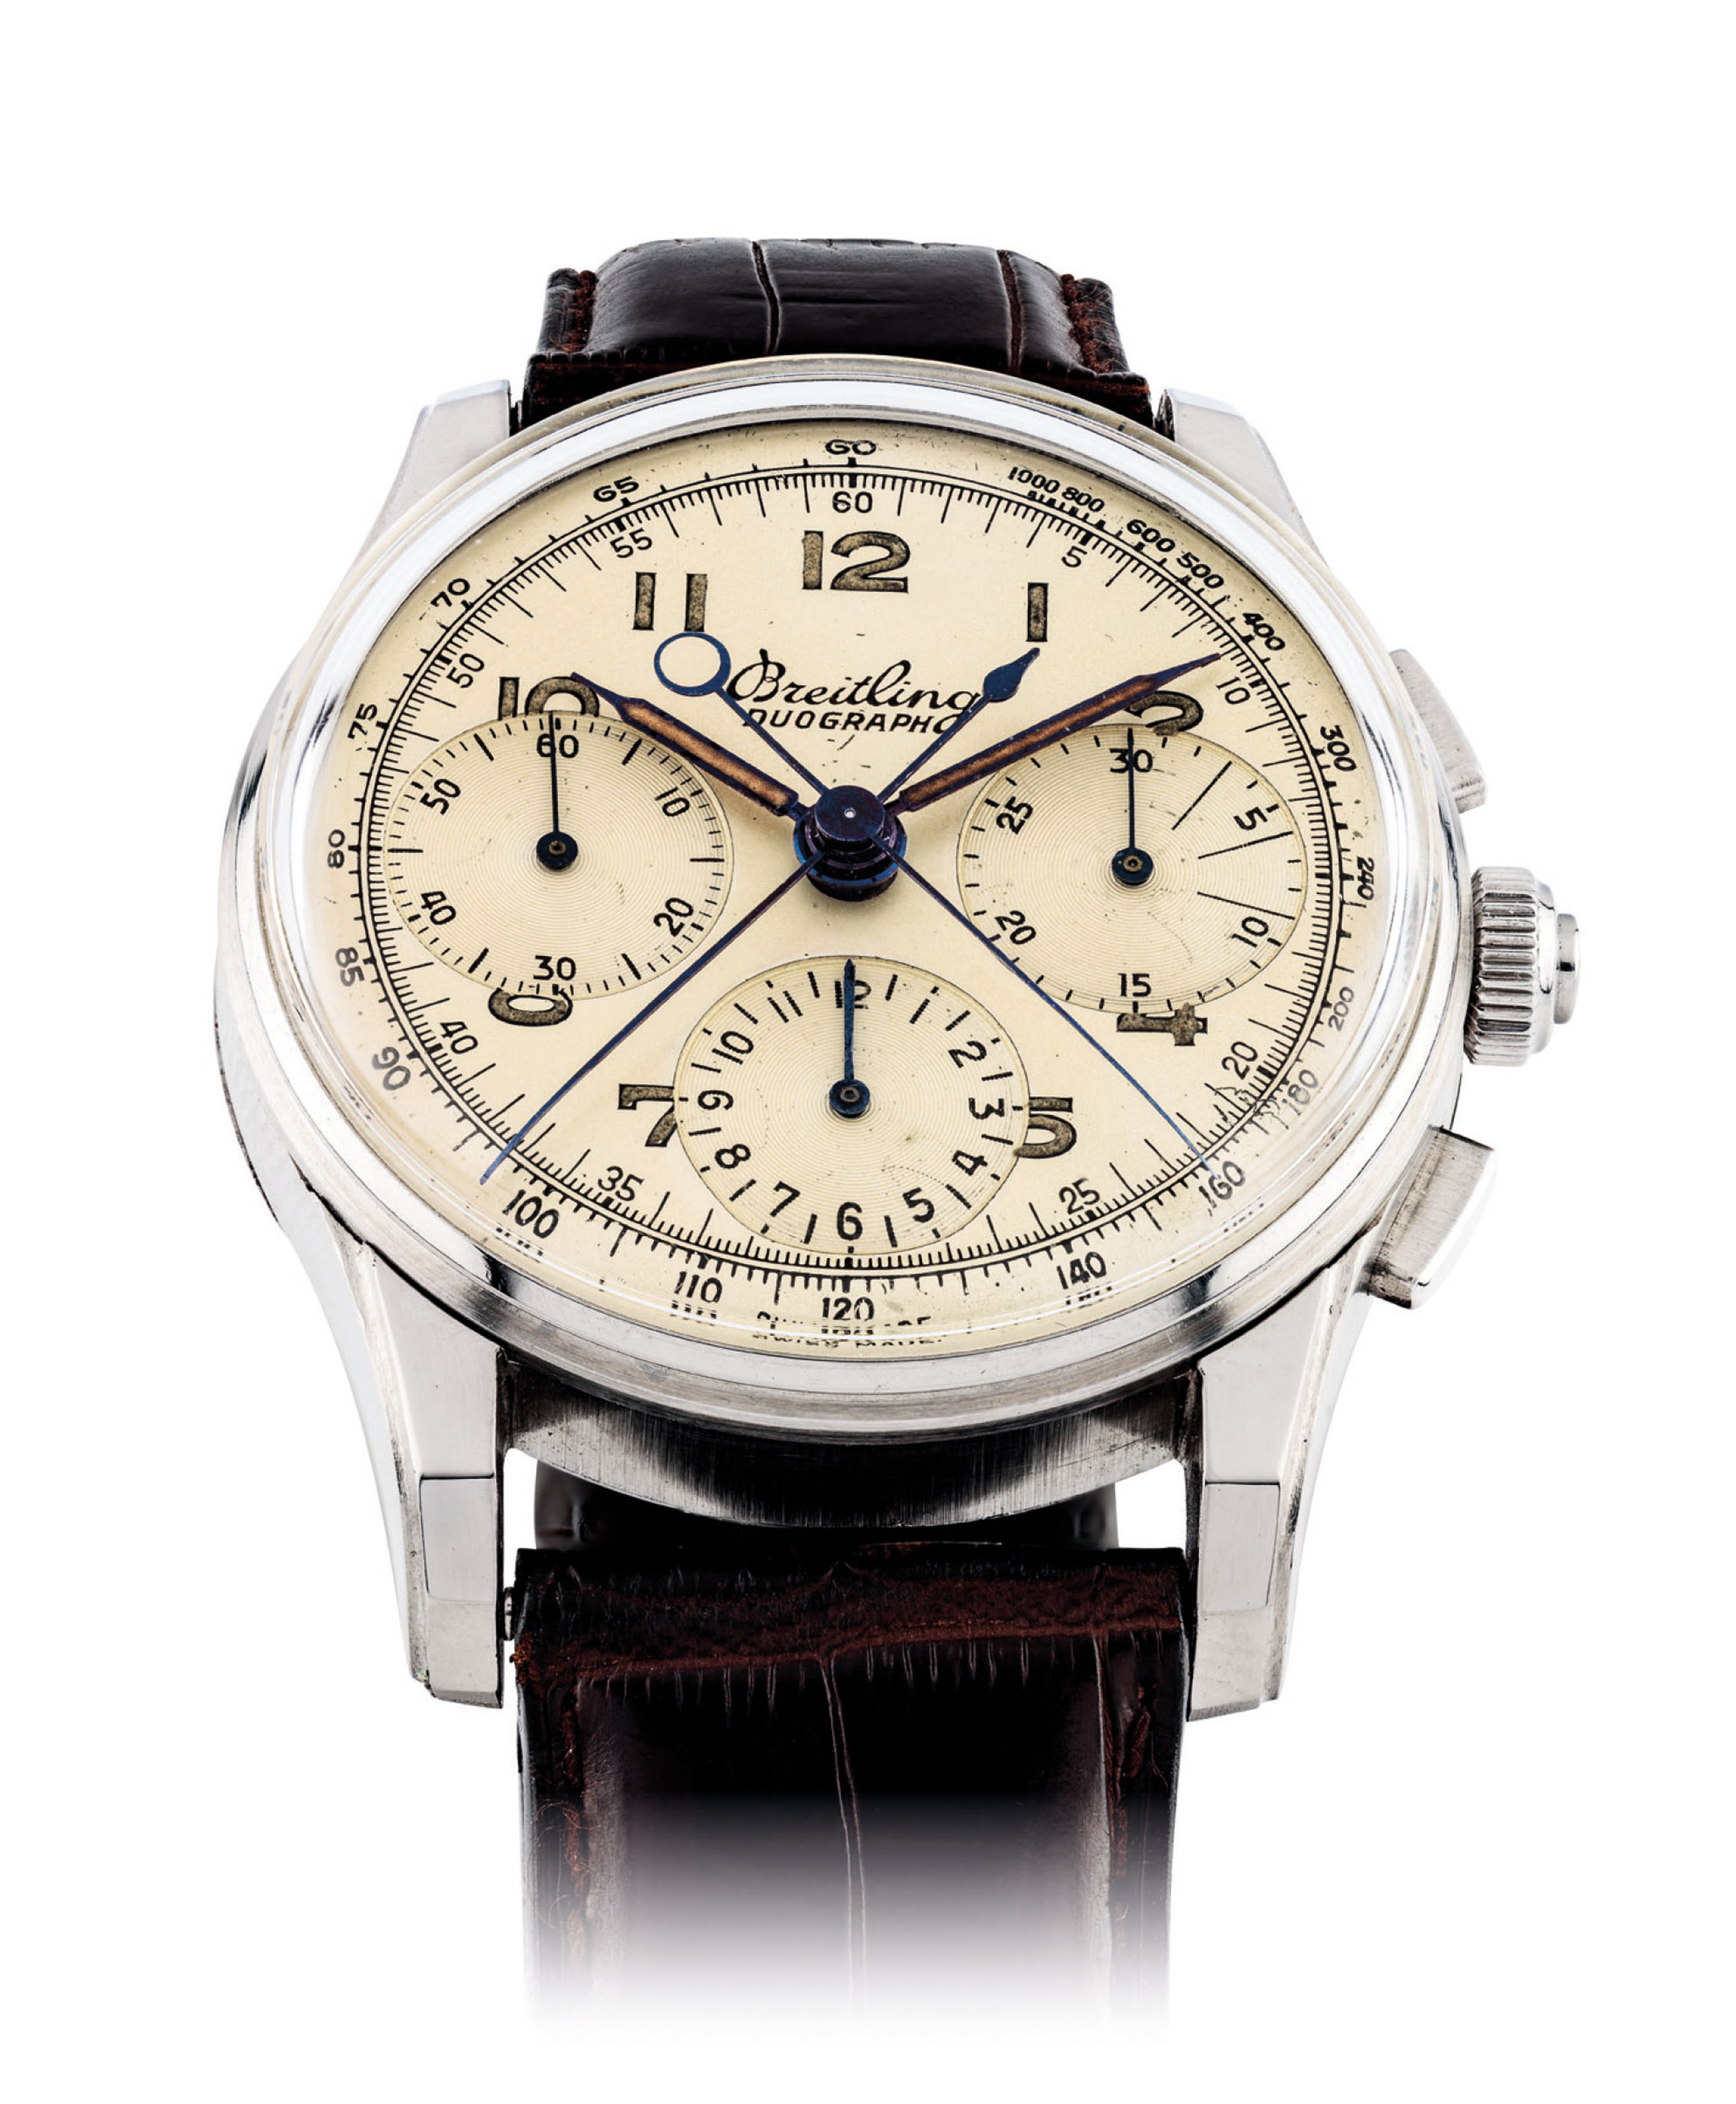 BREITLING. A FINE AND VERY RARE STAINLESS STEEL SPLIT SECONDS CHRONOGRAPH WRISTWATCH